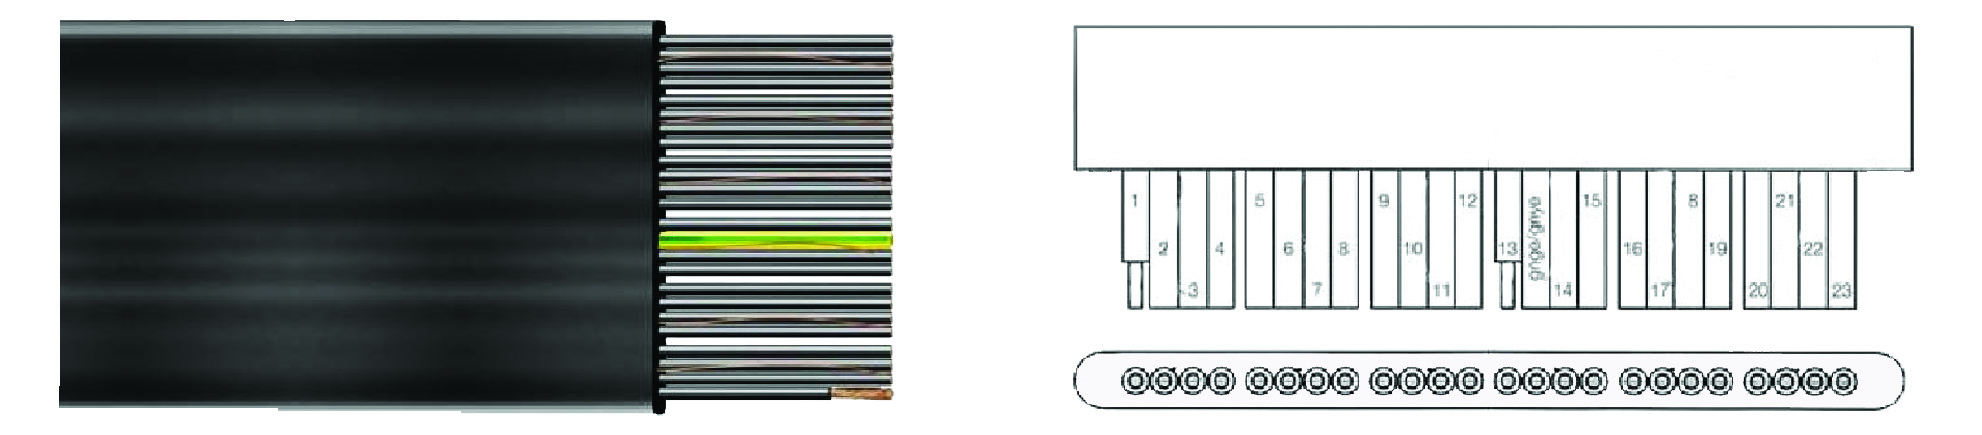 Nec conduit fill table emt choice image wiring table and diagram nec conduit fill table emt image collections wiring table and nec conduit fill table c9 gallery keyboard keysfo Choice Image